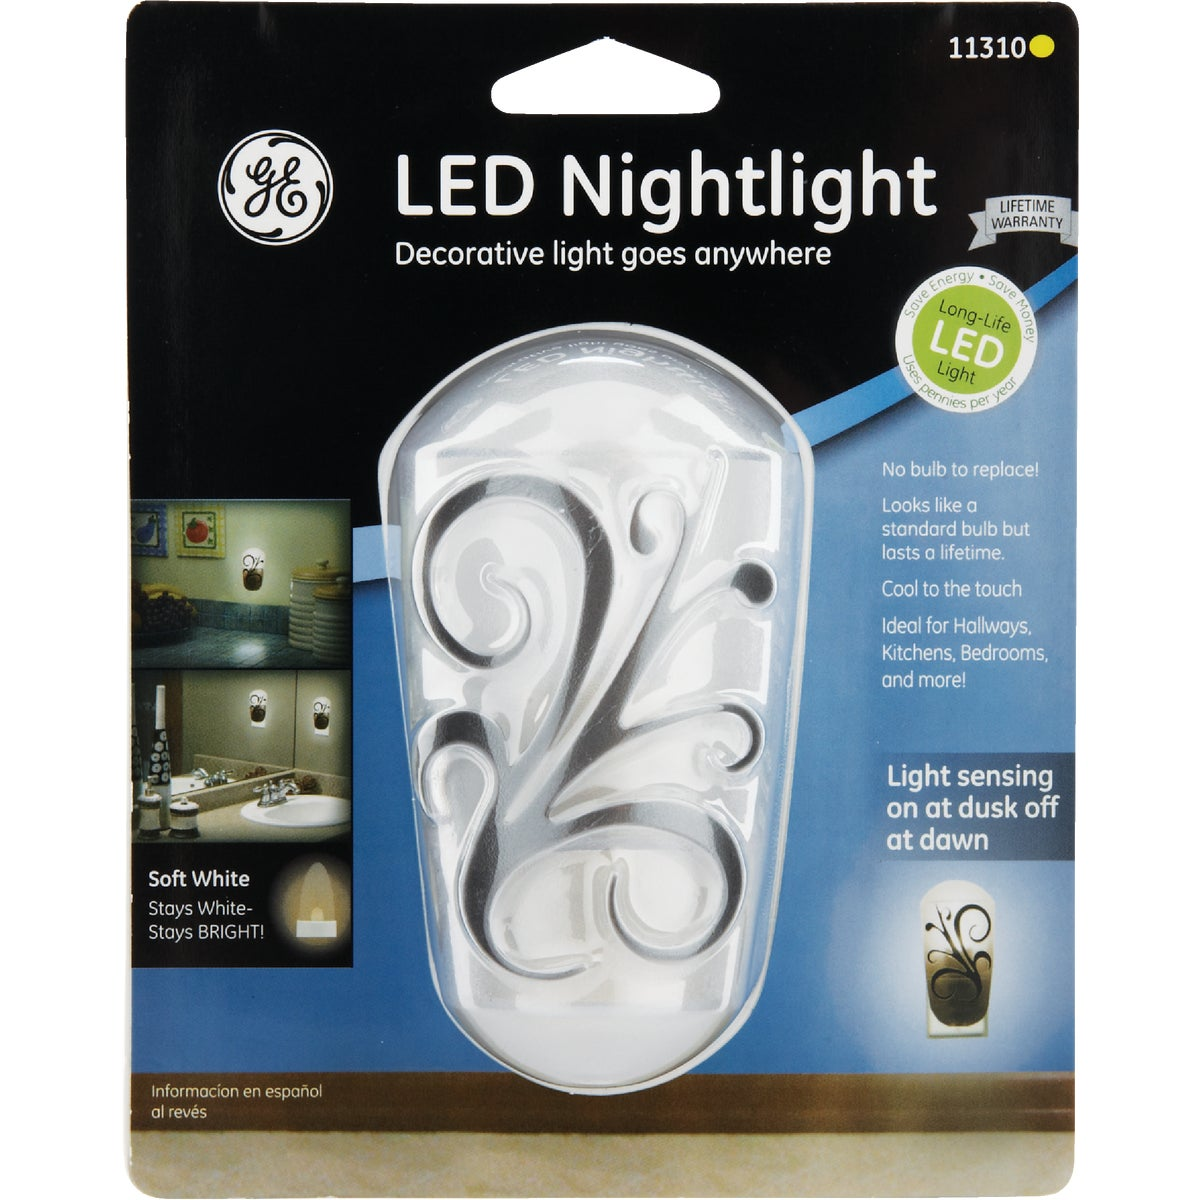 LED NIGHTLIGHT - 11310 by Jasco Products Co